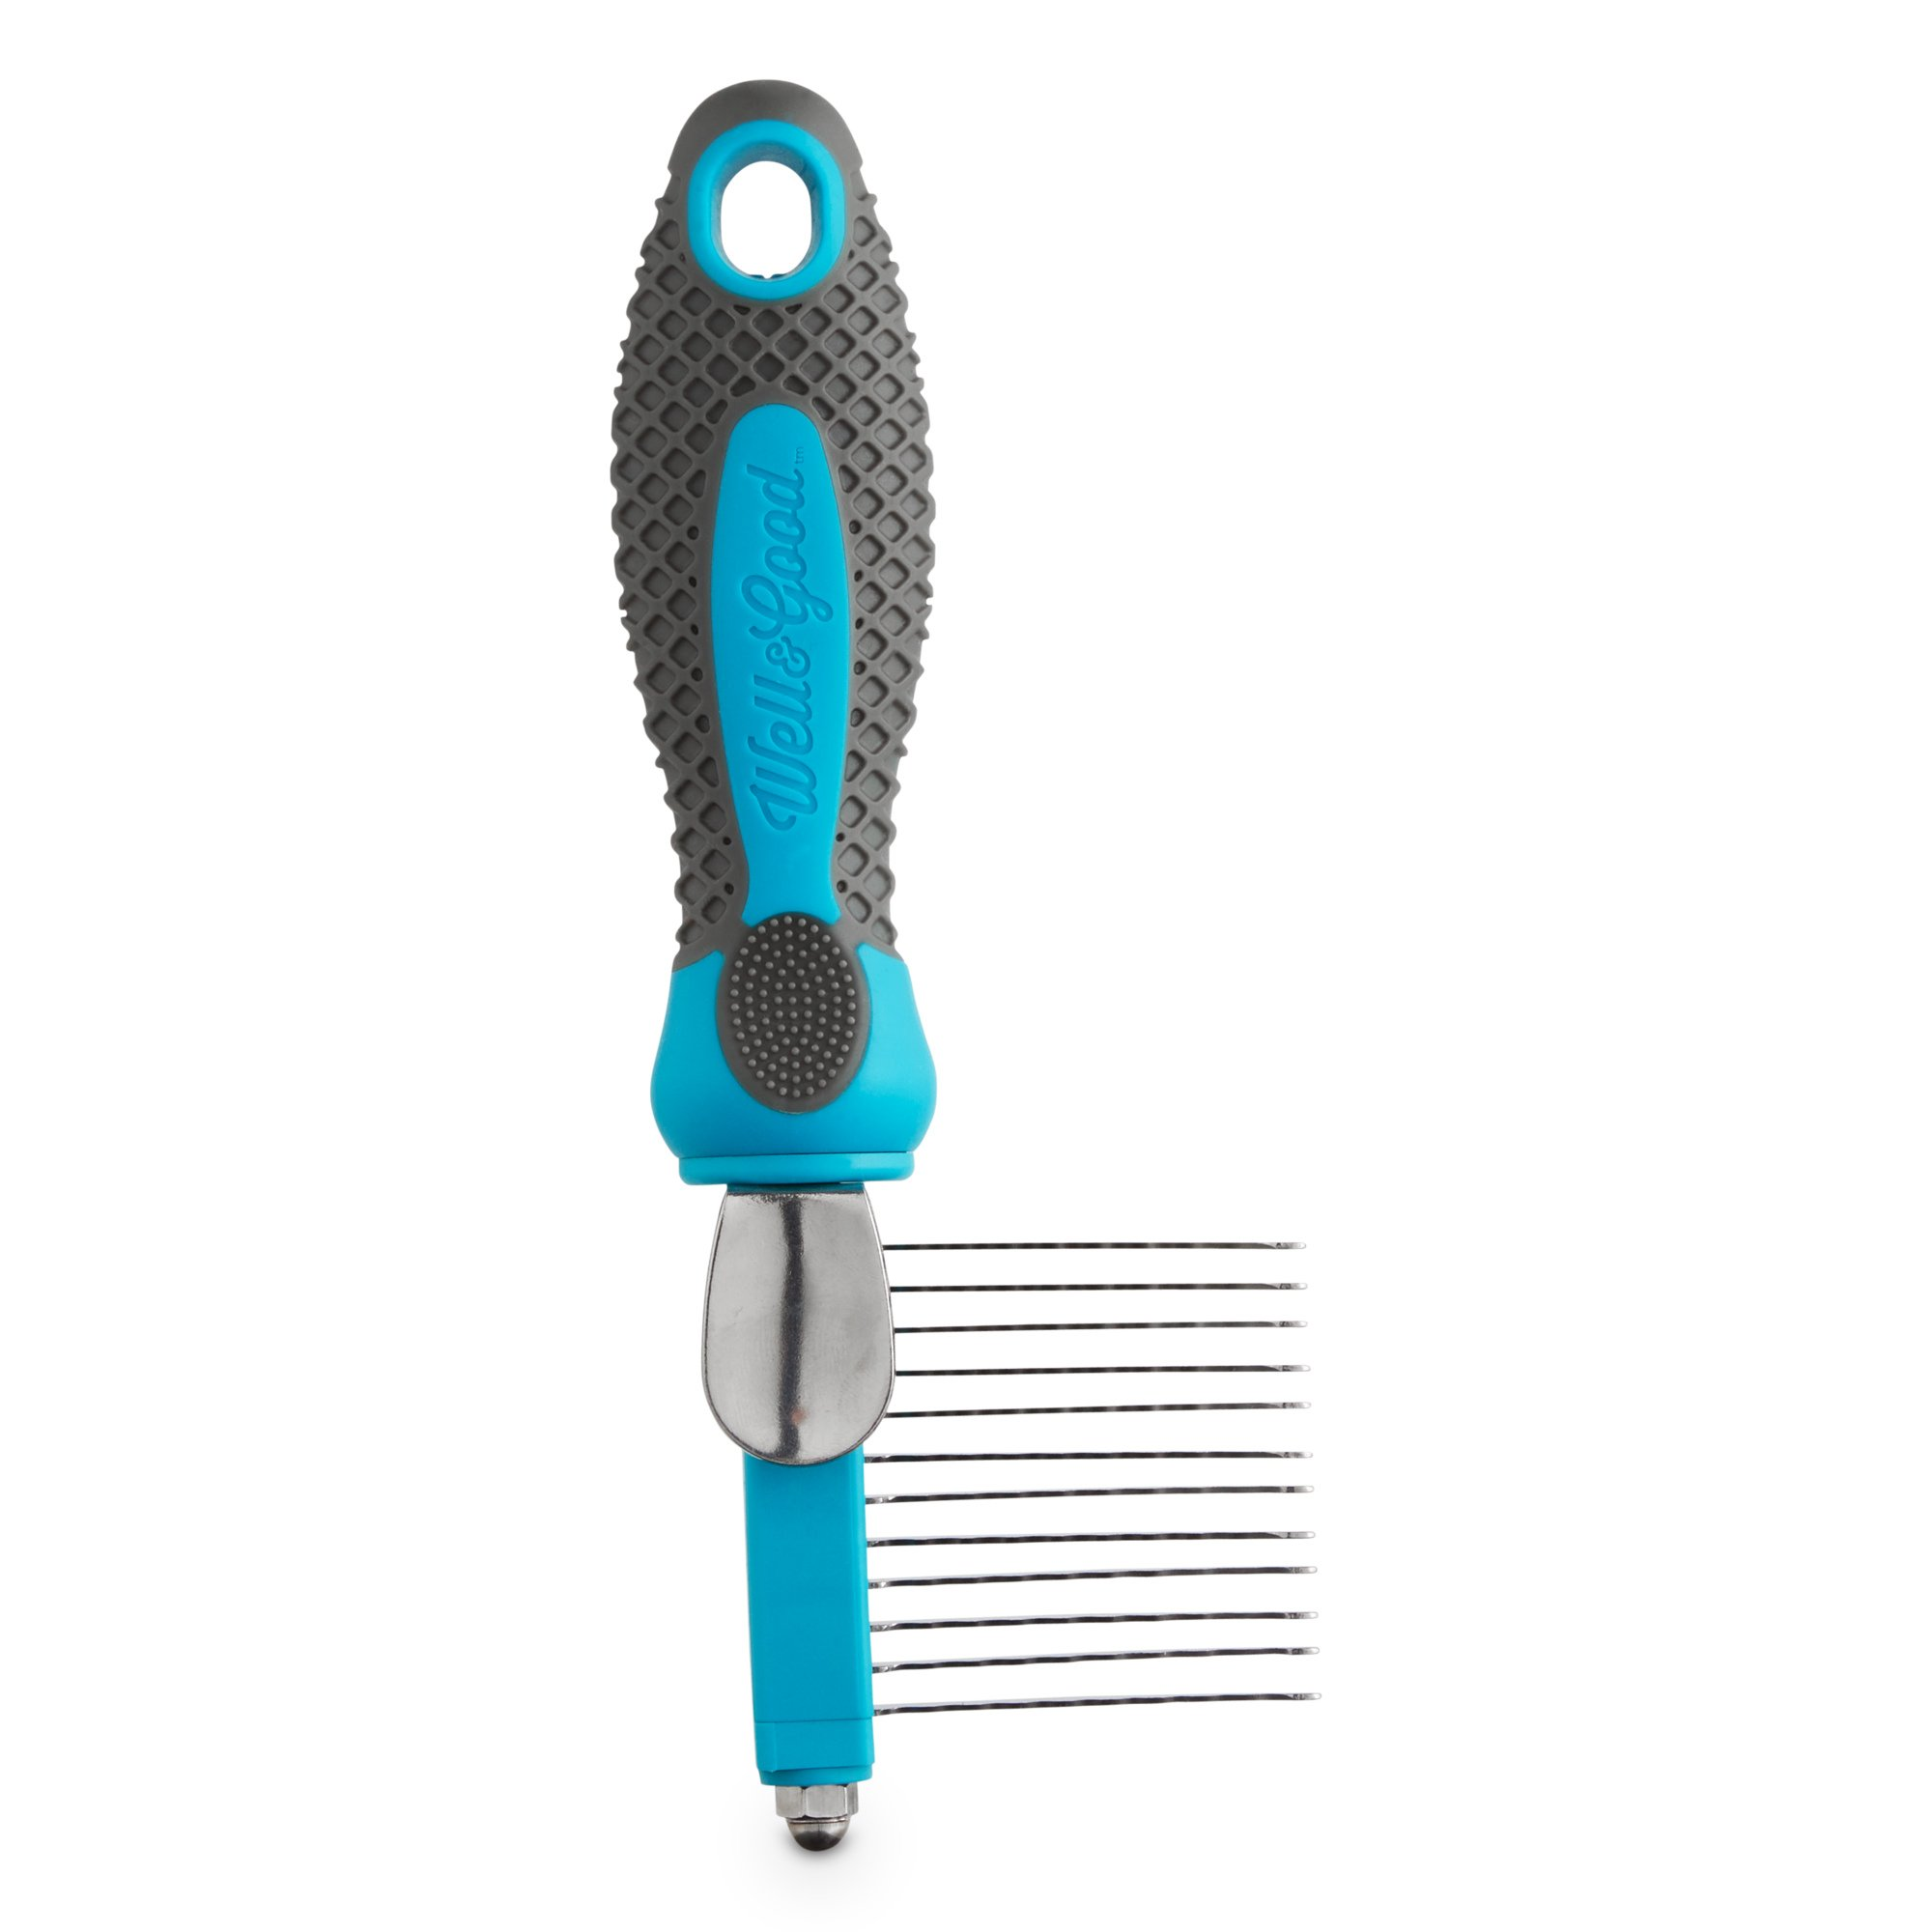 Petco dog dematting comb